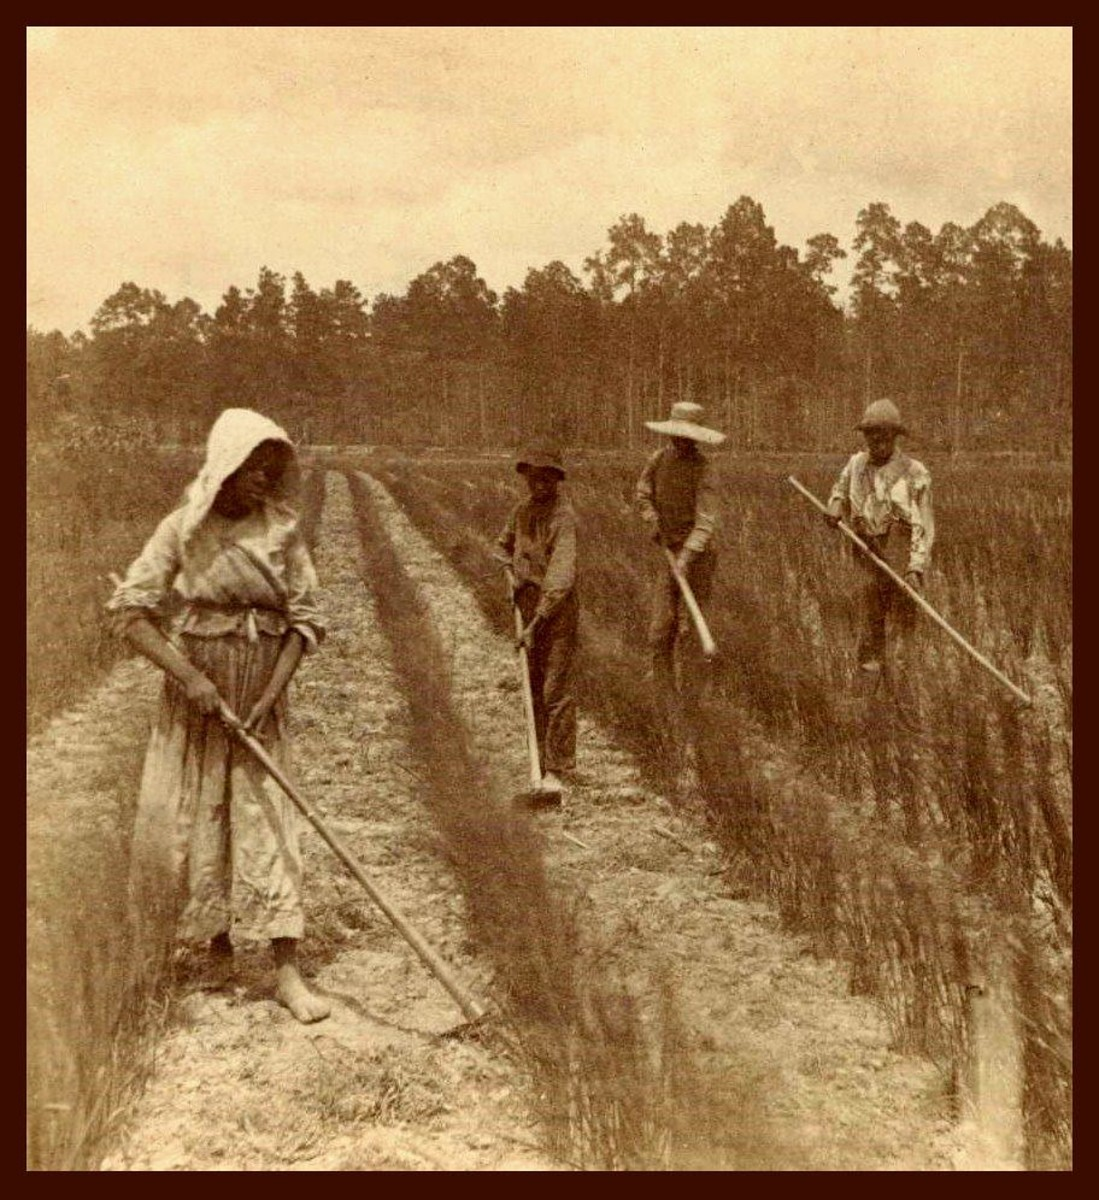 Barefoot slaves work a rice field.